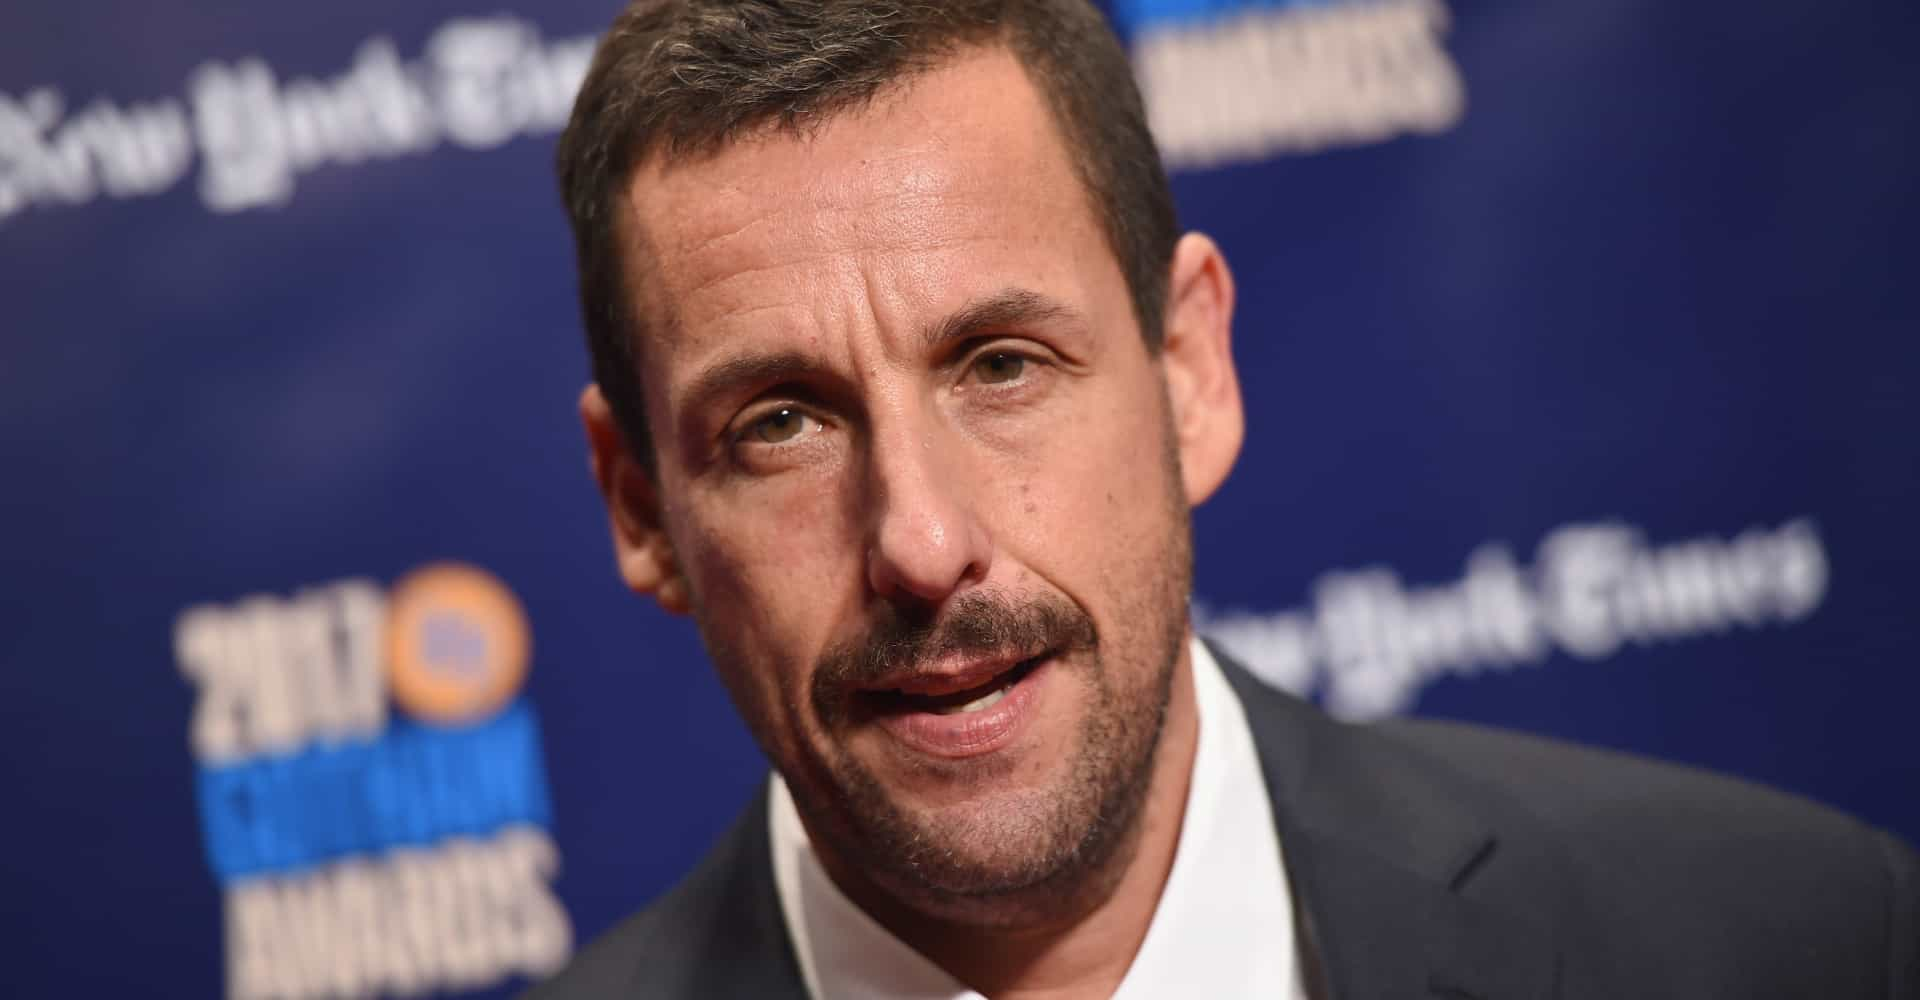 Does funnyman Adam Sandler do his own stunts?